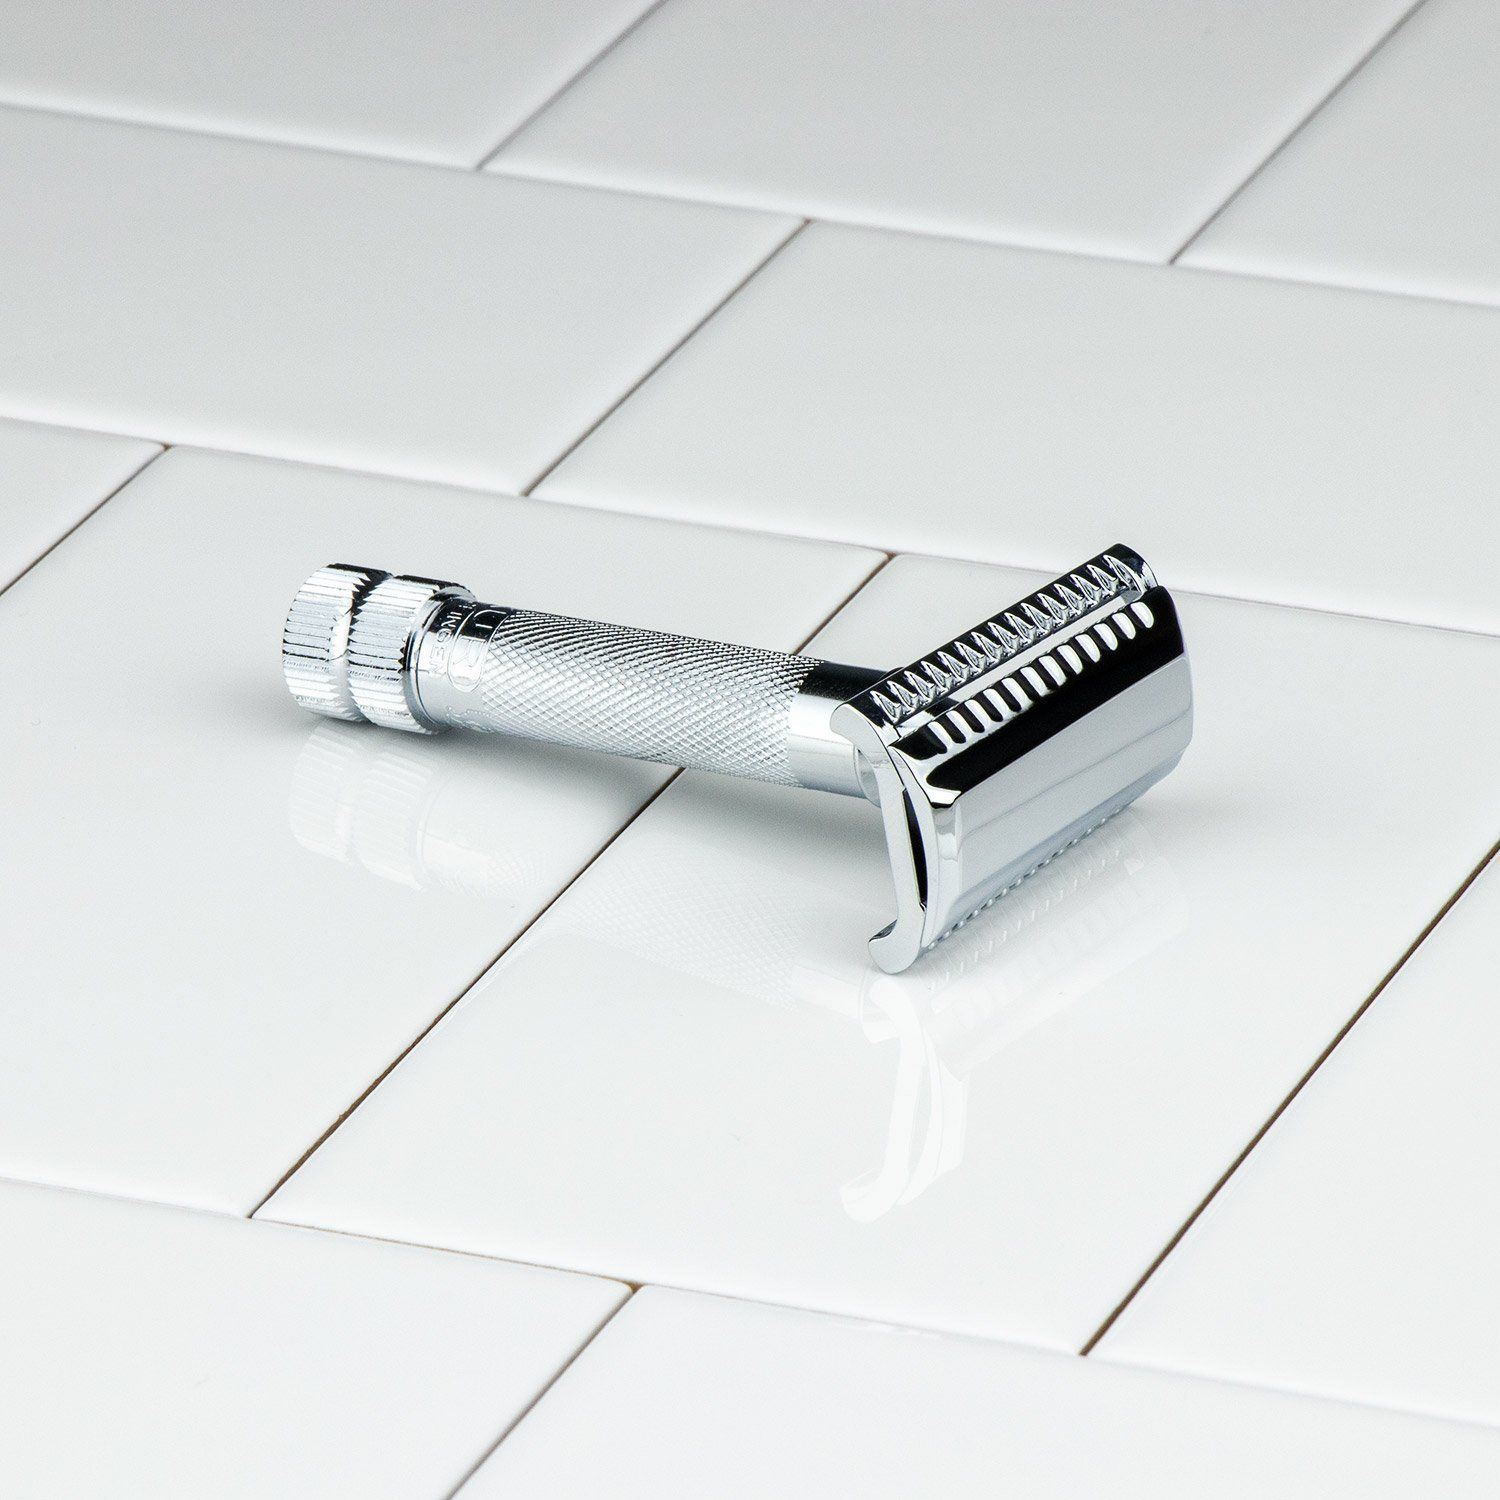 Merkur Double Edge Safety Razor, Slant Cut, Extra Thick Handle, Chrome 37C